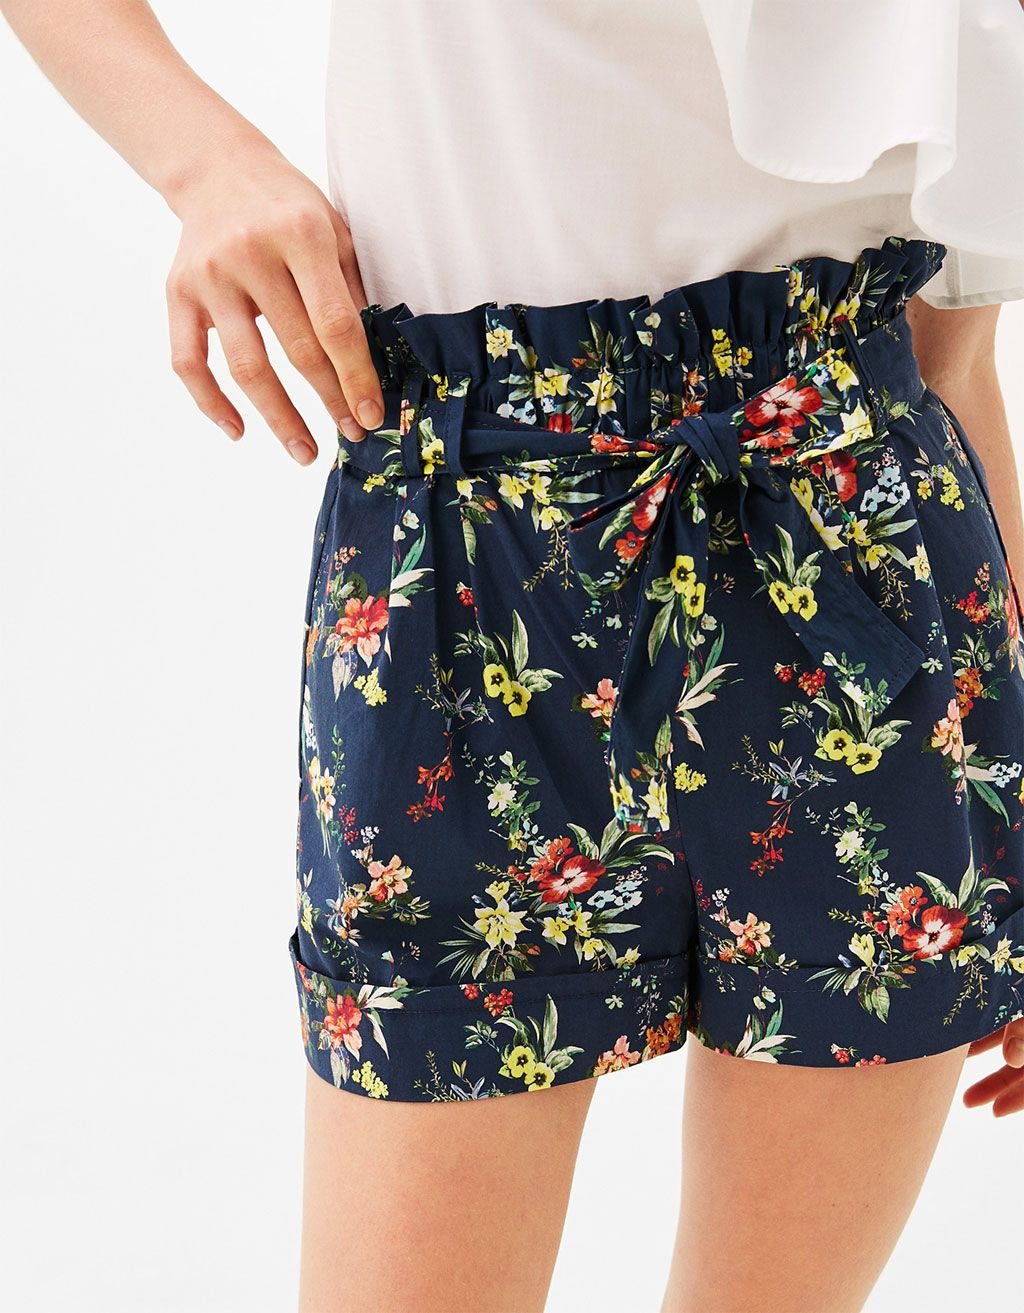 300a8cd7f Poplin bermuda shorts with belt and a floral print. Discover this and many  more items in Bershka with new products every week